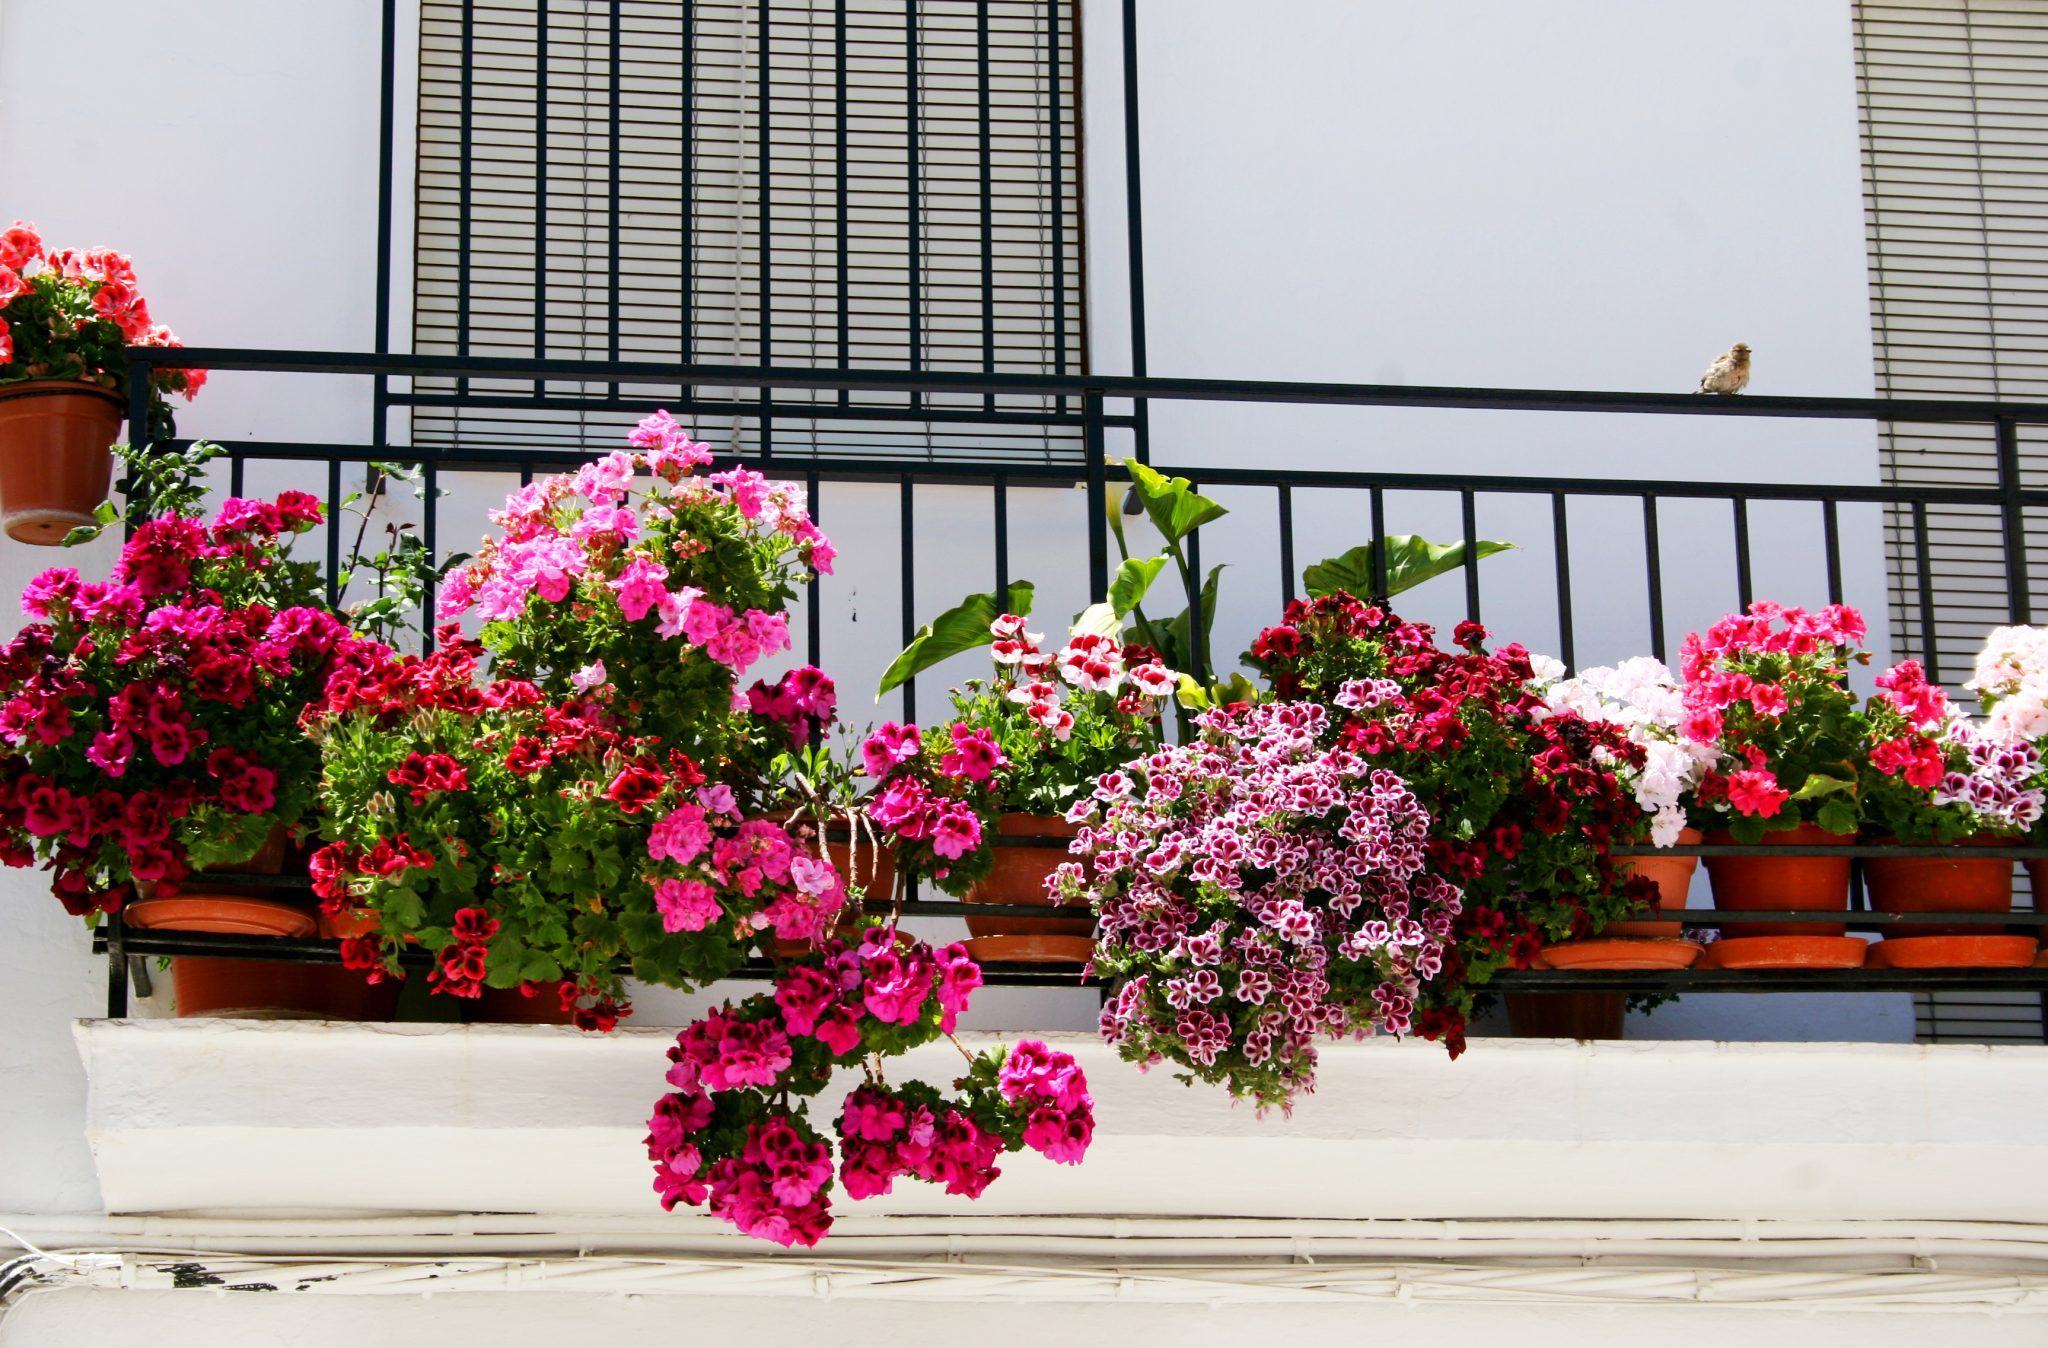 Cycling in Andalucia, Spain - Flowers!